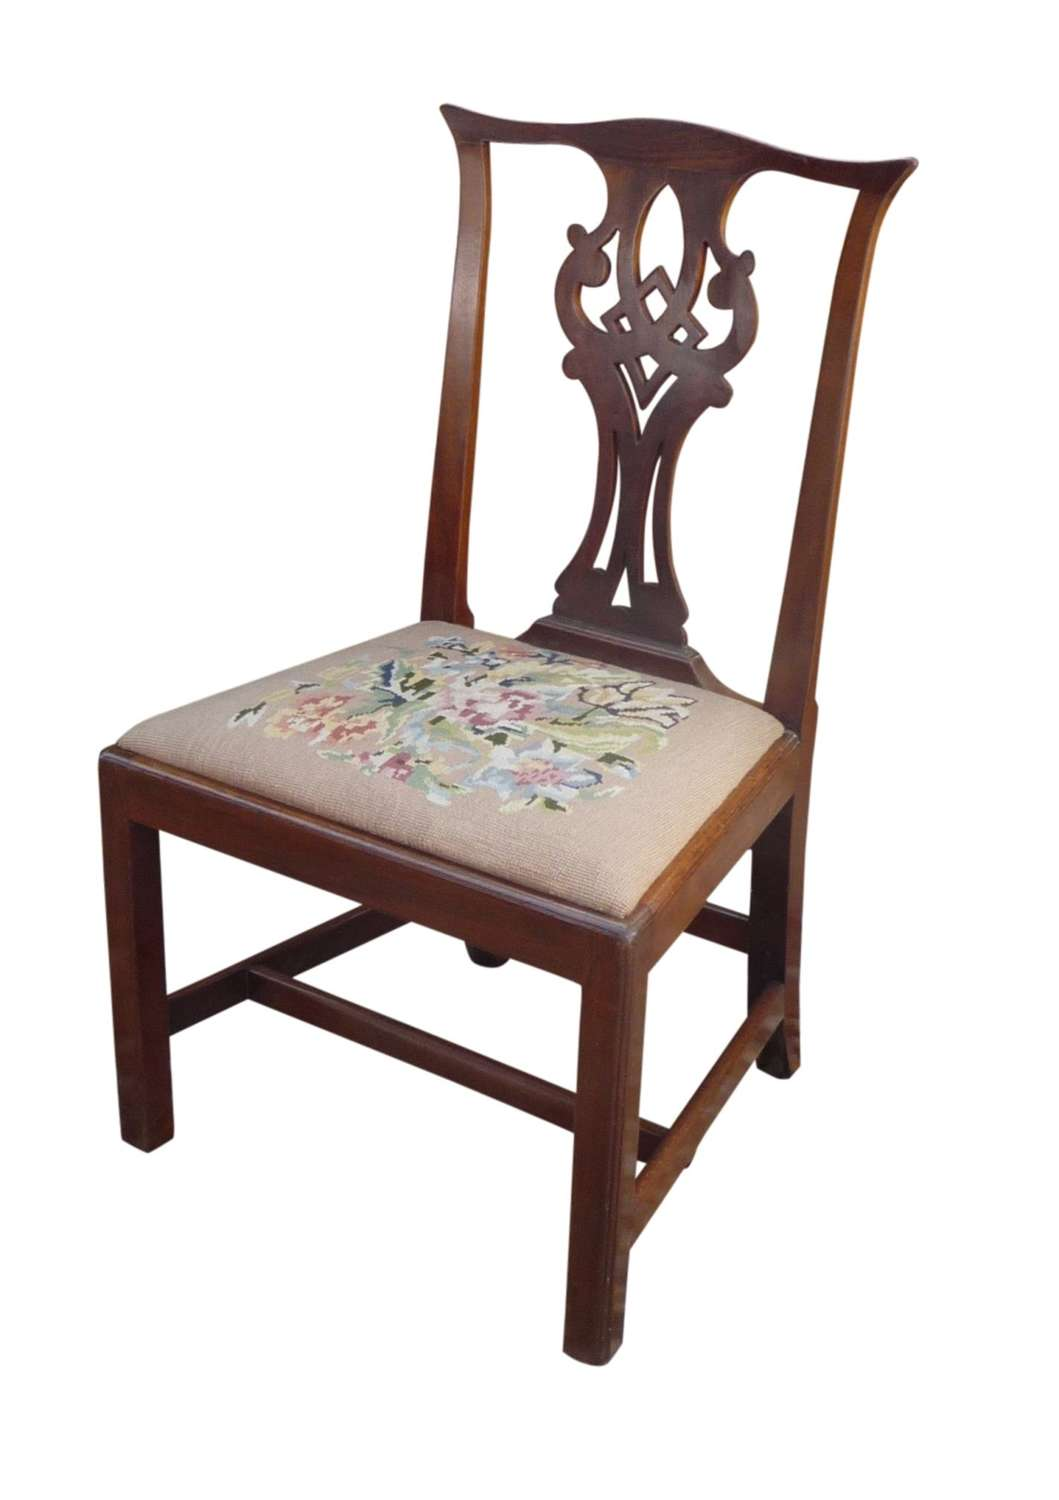 A Chippendale period mahogany side chair circa 1765